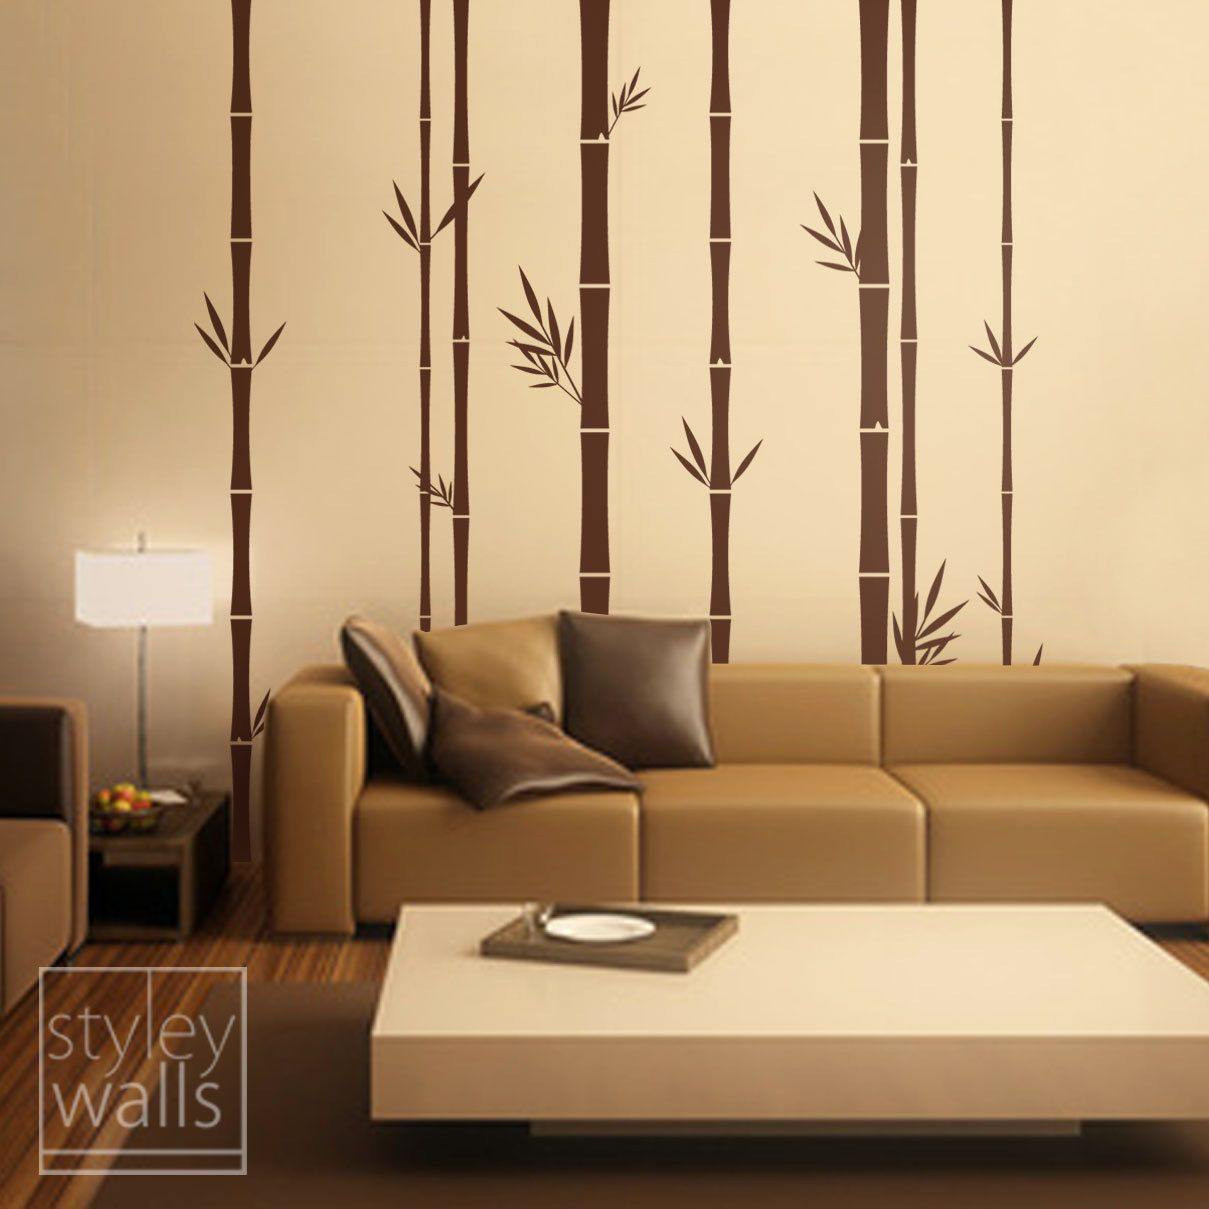 Bamboo Wall Decal 100inch Tall, Set of 8 Bamboo Stalks Vinyl Wall ... for Bamboo Wall Decoration Ideas  284dqh